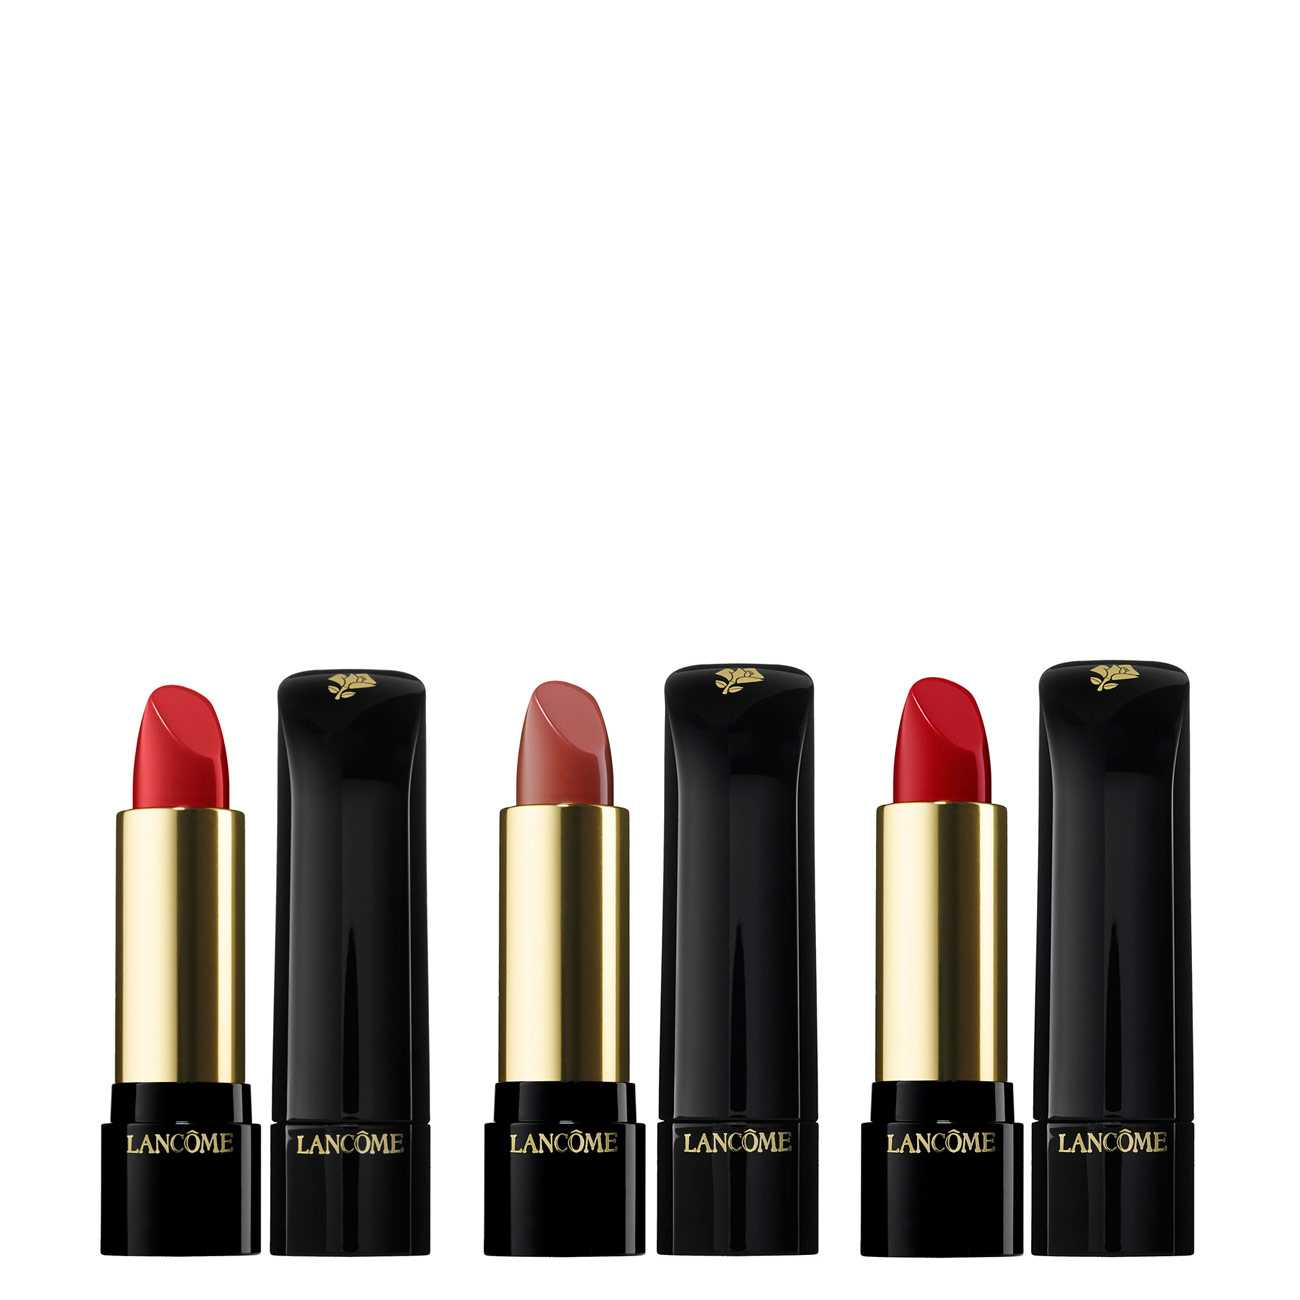 ABSOLU ROUGE SET 12 G imagine produs